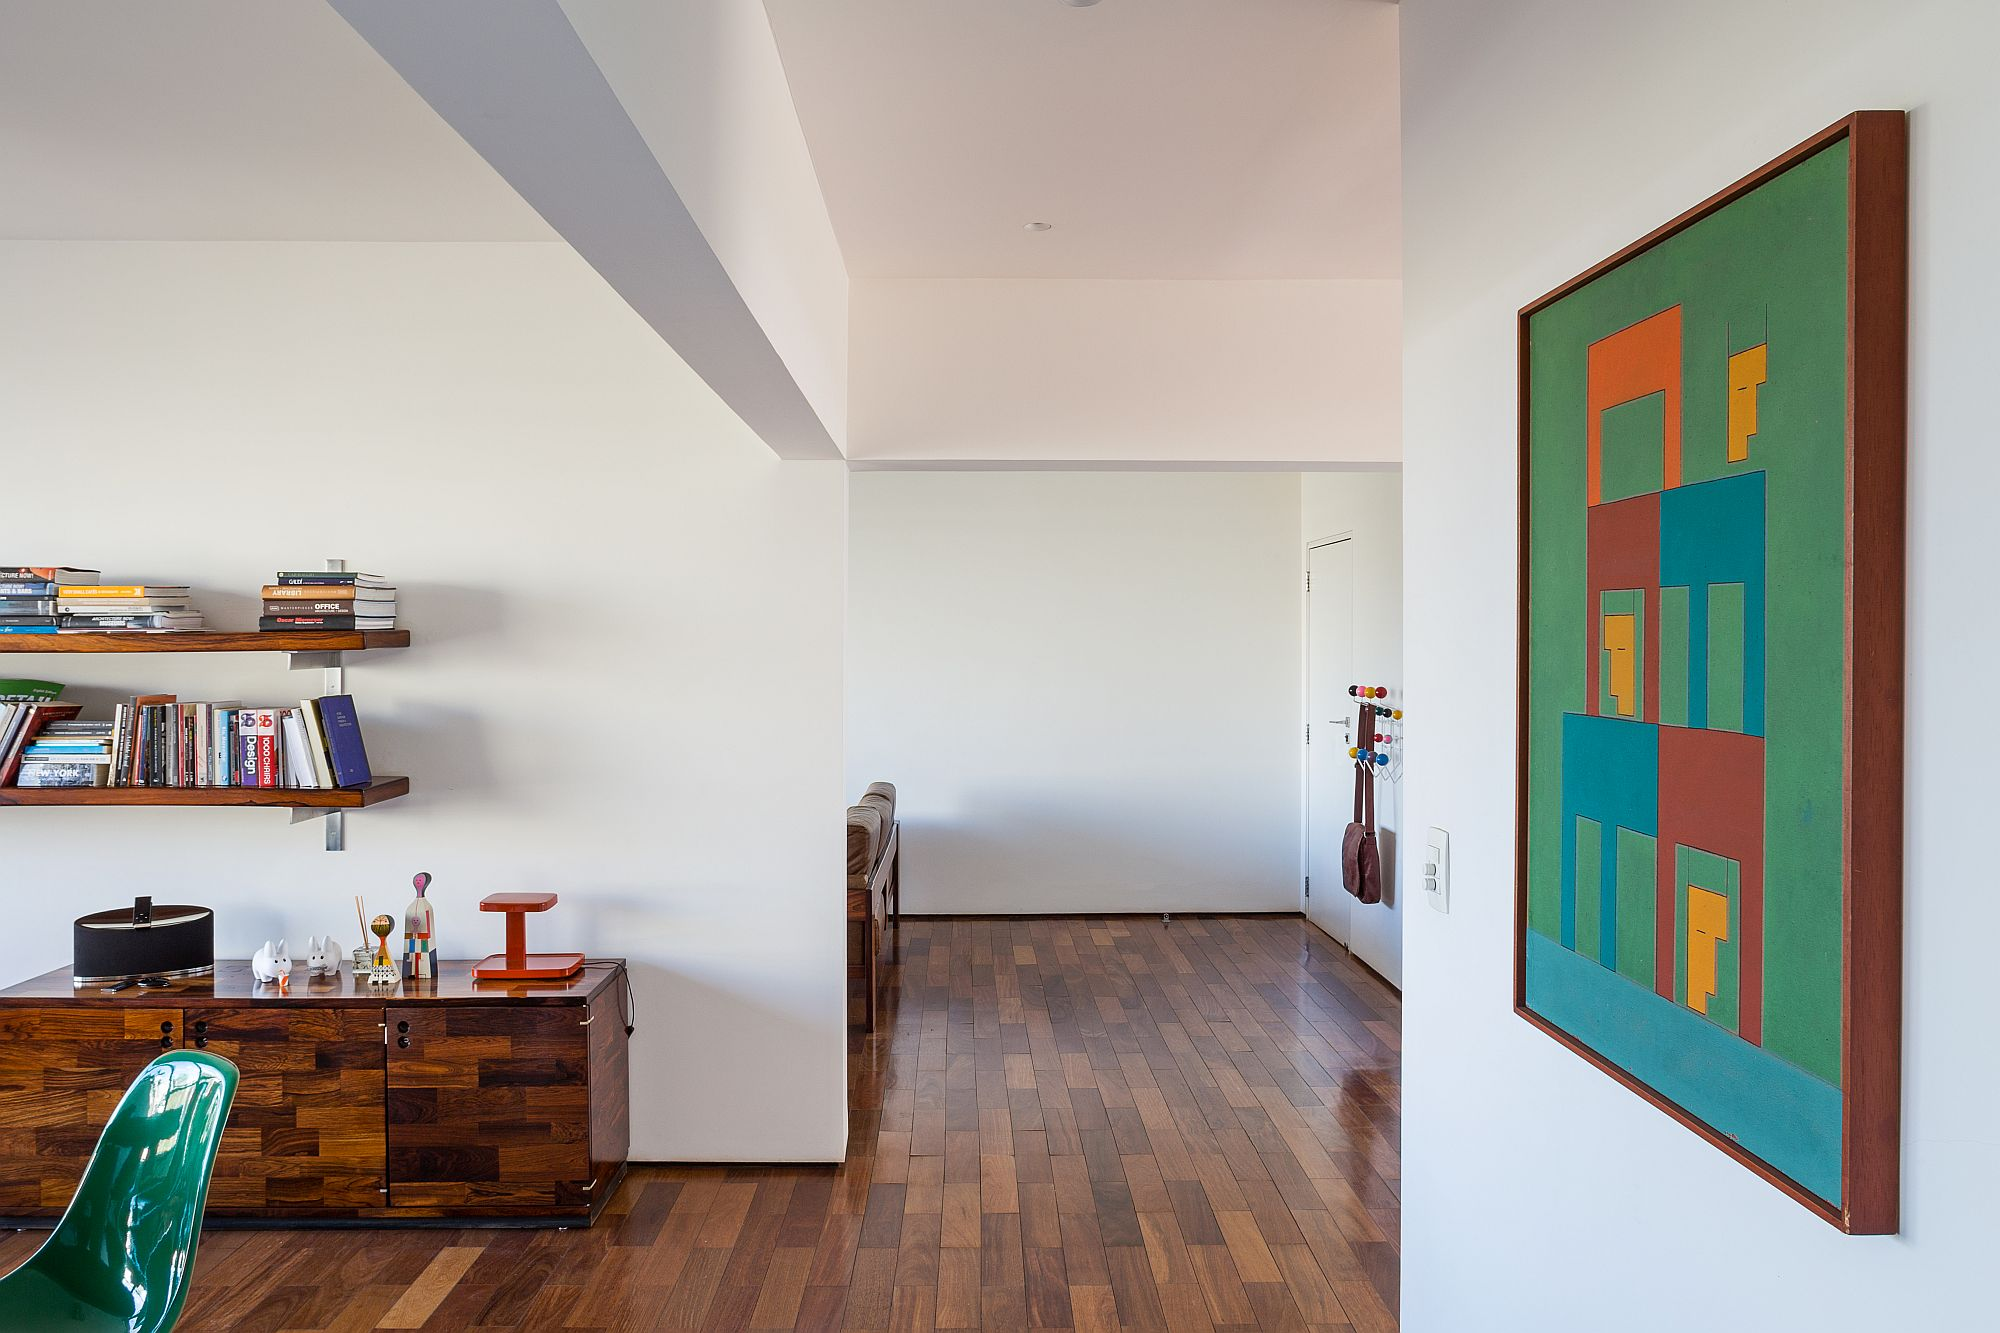 New wooden floor inside the home adds to its fresh, cheerful look